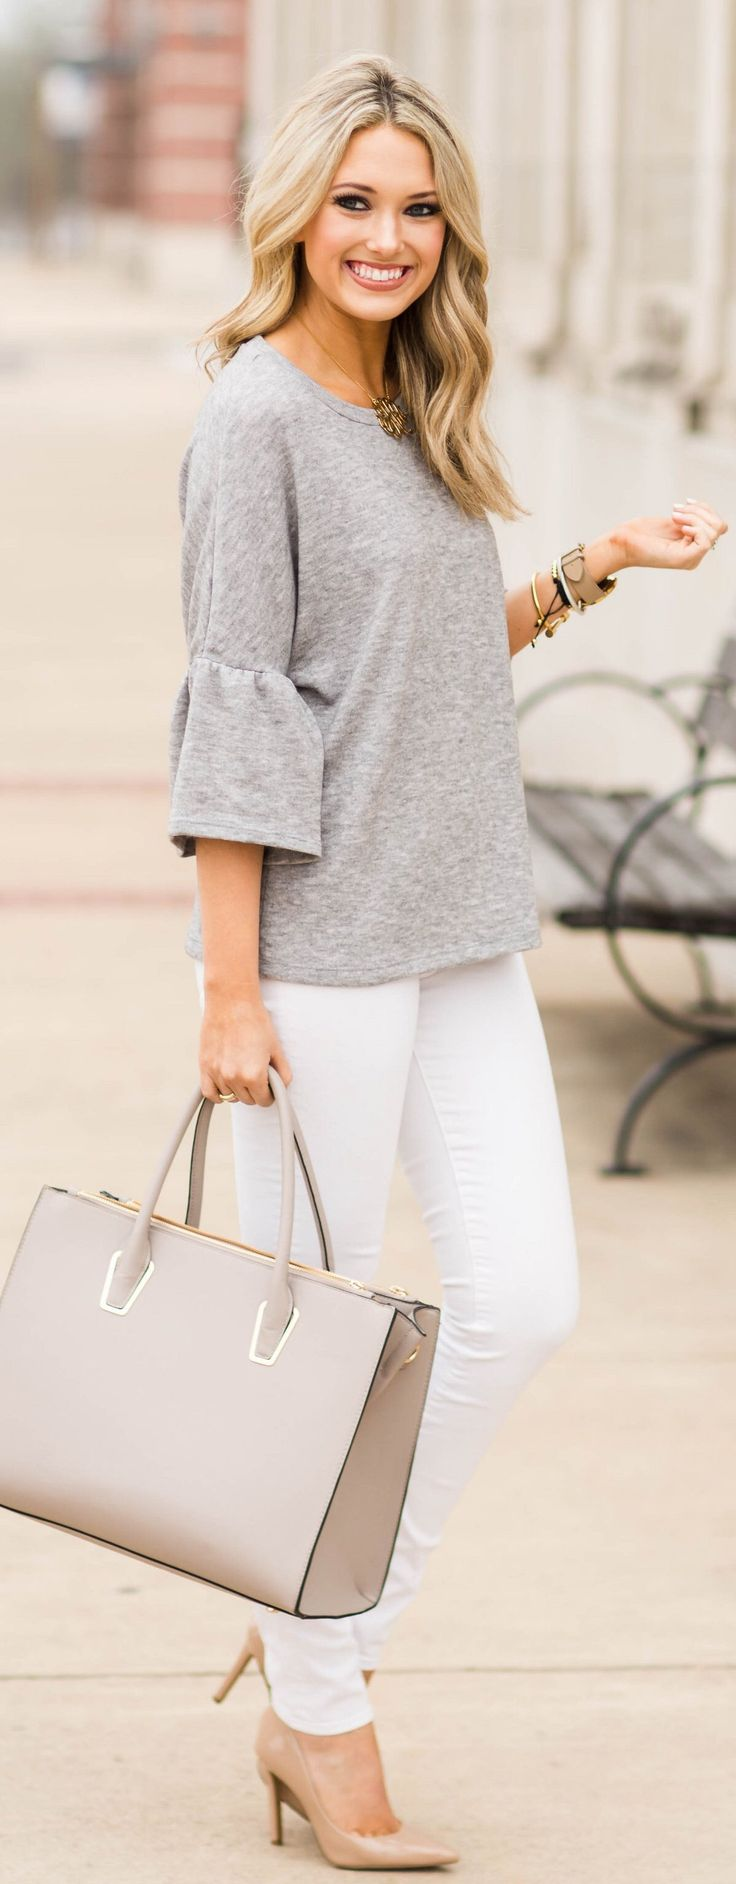 Grey Top / White Skinny Jeans / Nude Pumps / Grey Leather Tote Bag